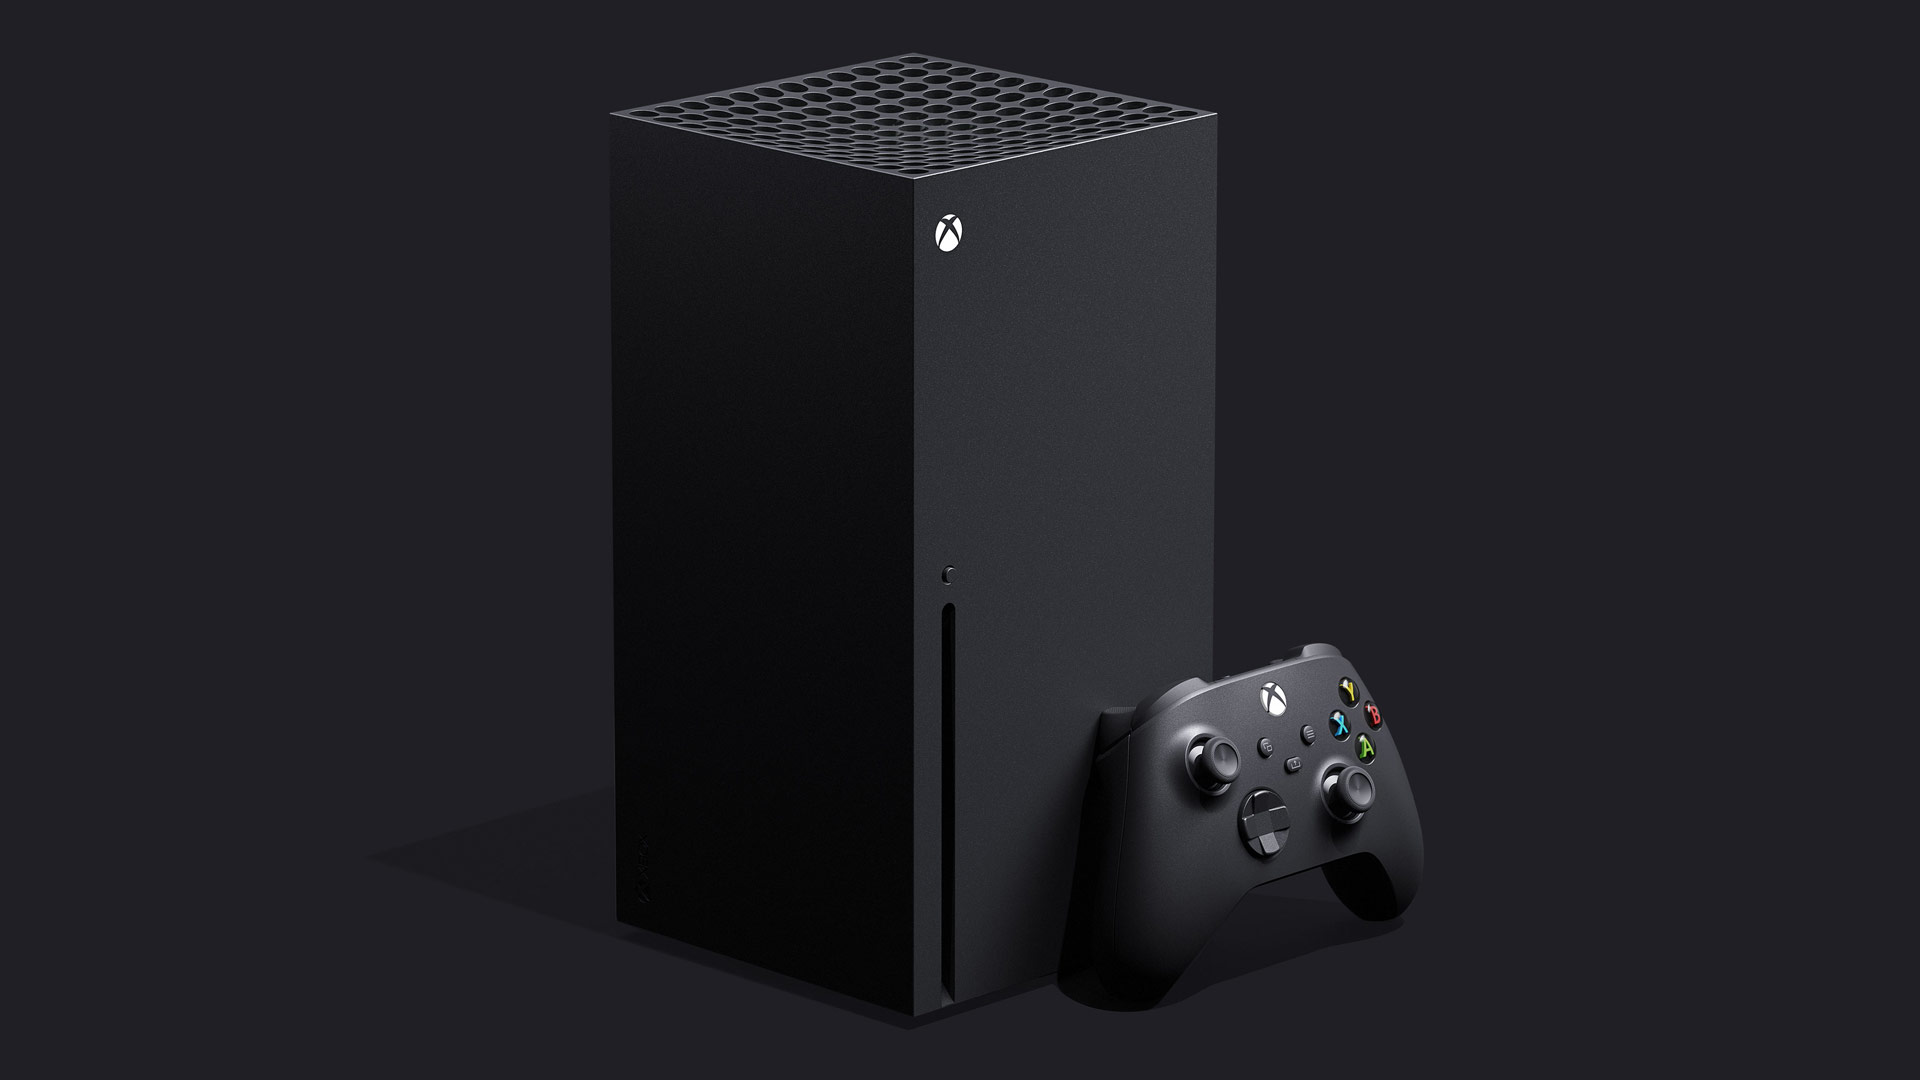 You'll get a free Xbox Series X if you can become an Xbox trivia champ screenshot